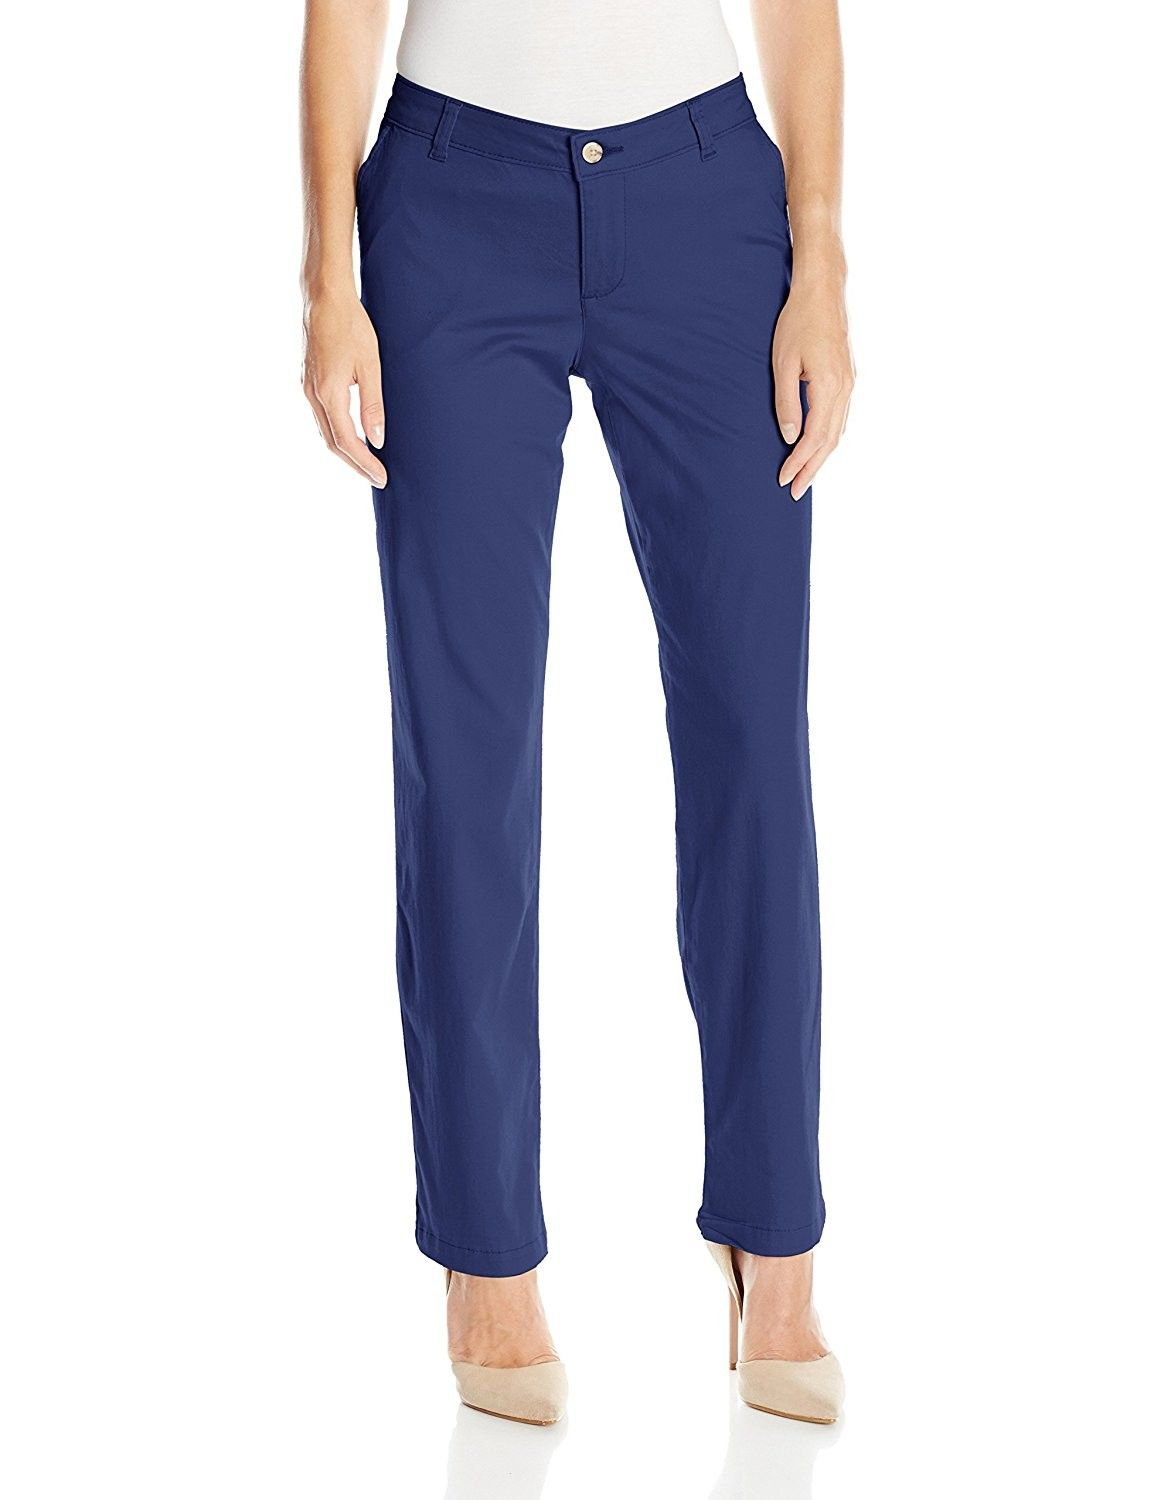 Riders by Lee Indigo Womens Basic Twill Chino with Coin Pocket